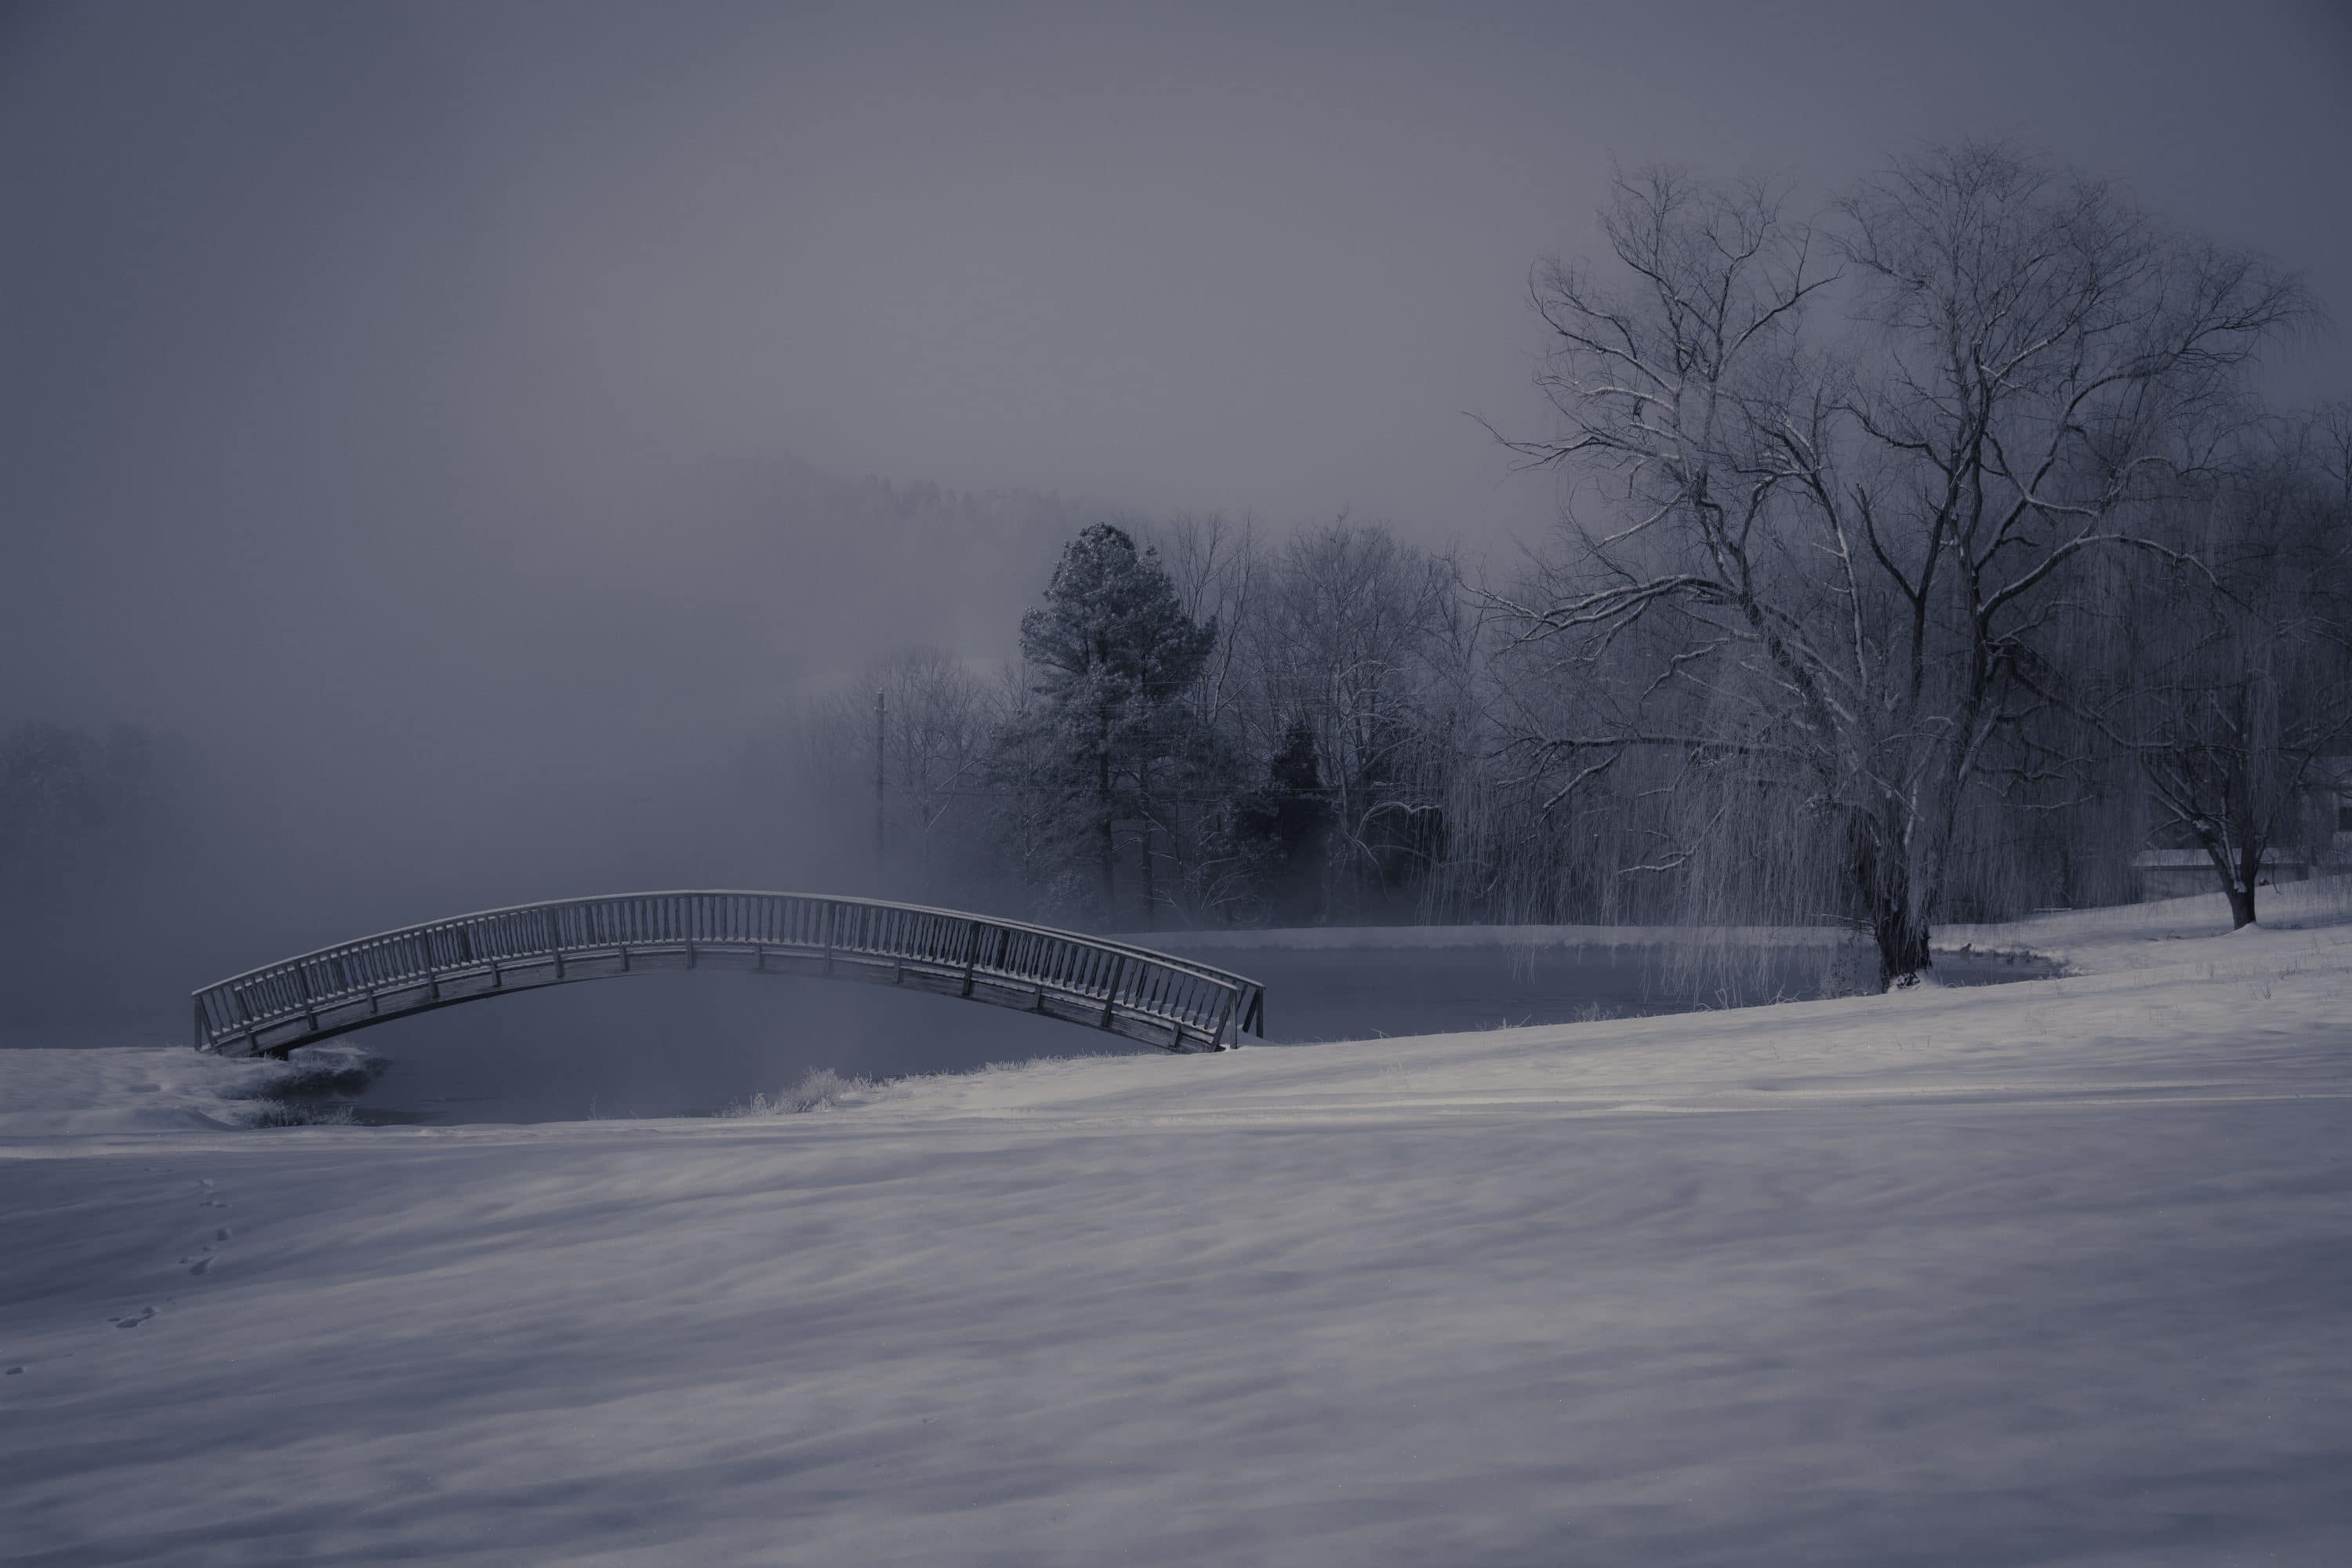 snow fog and ice around an arched bridge over a pond in a snowy landscape